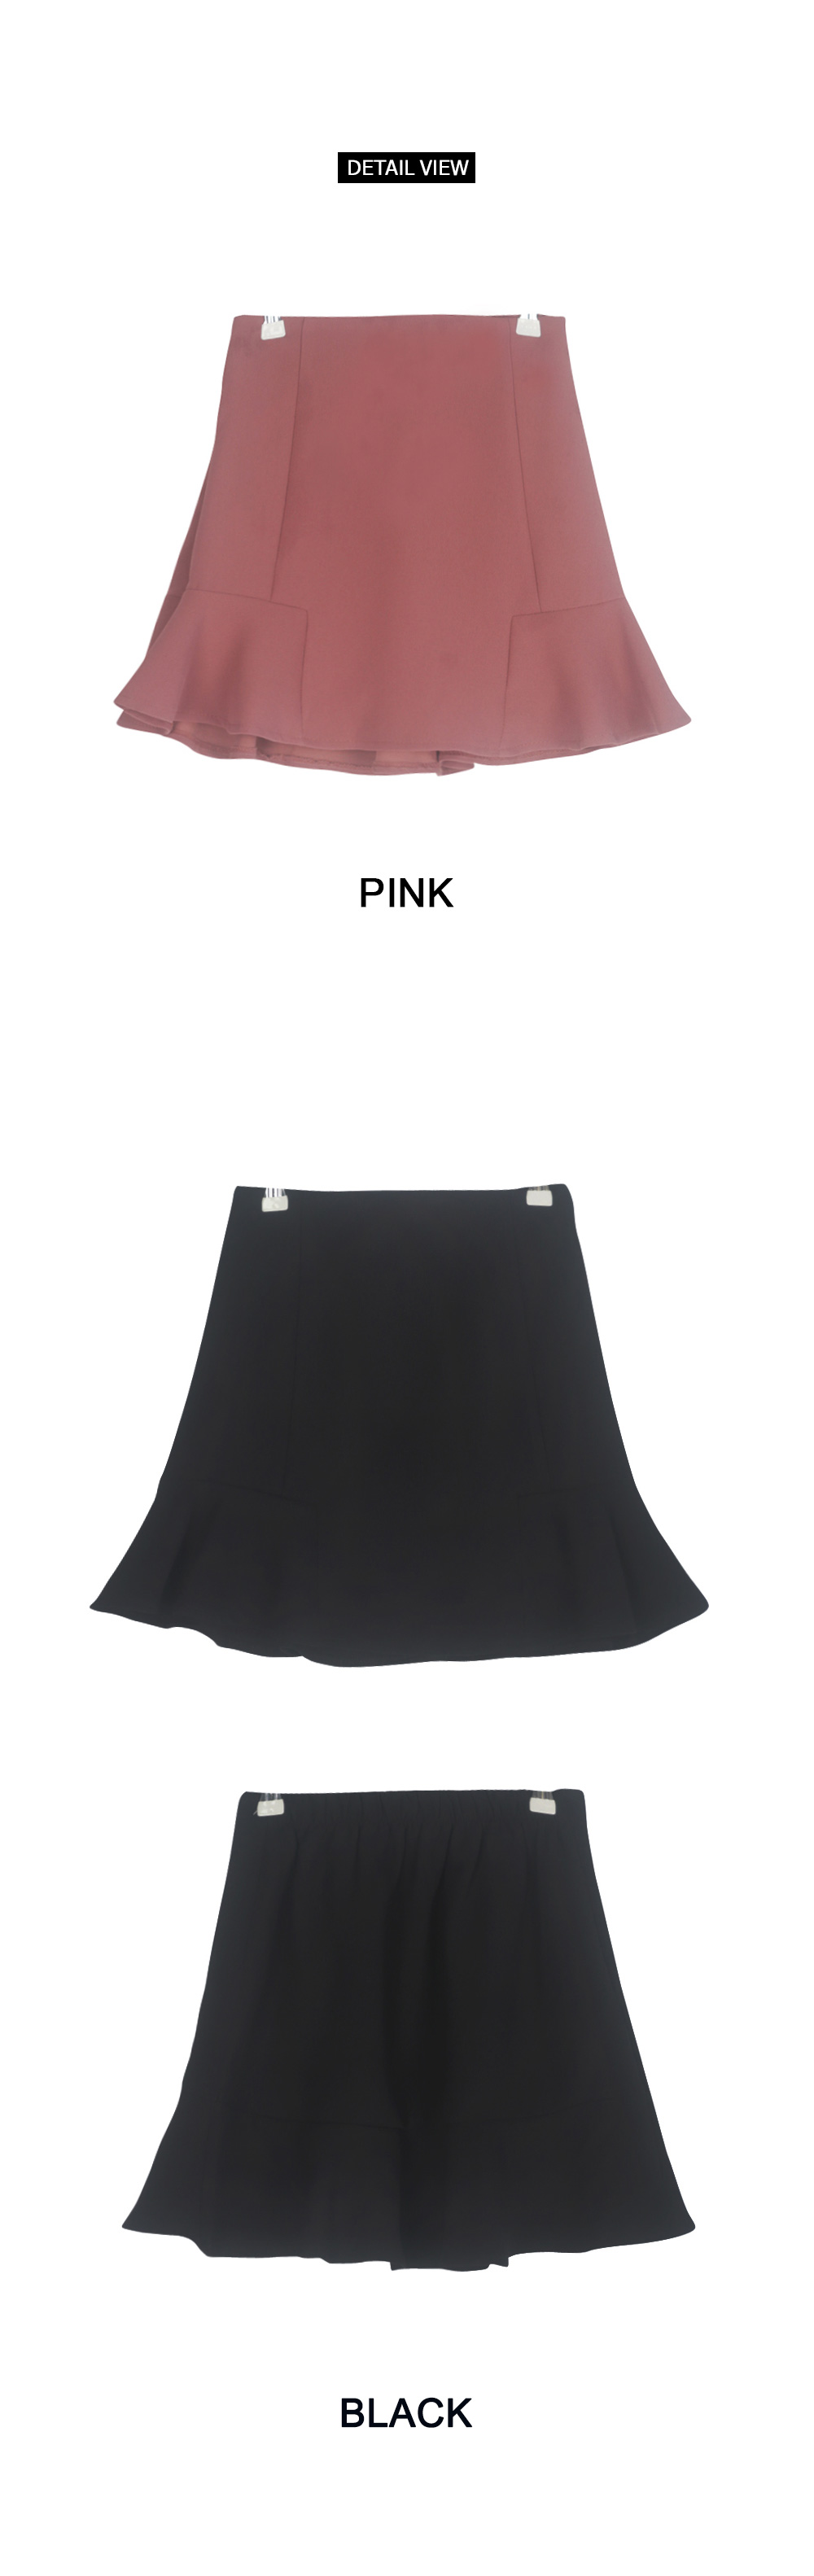 Mulled ruffle skirt